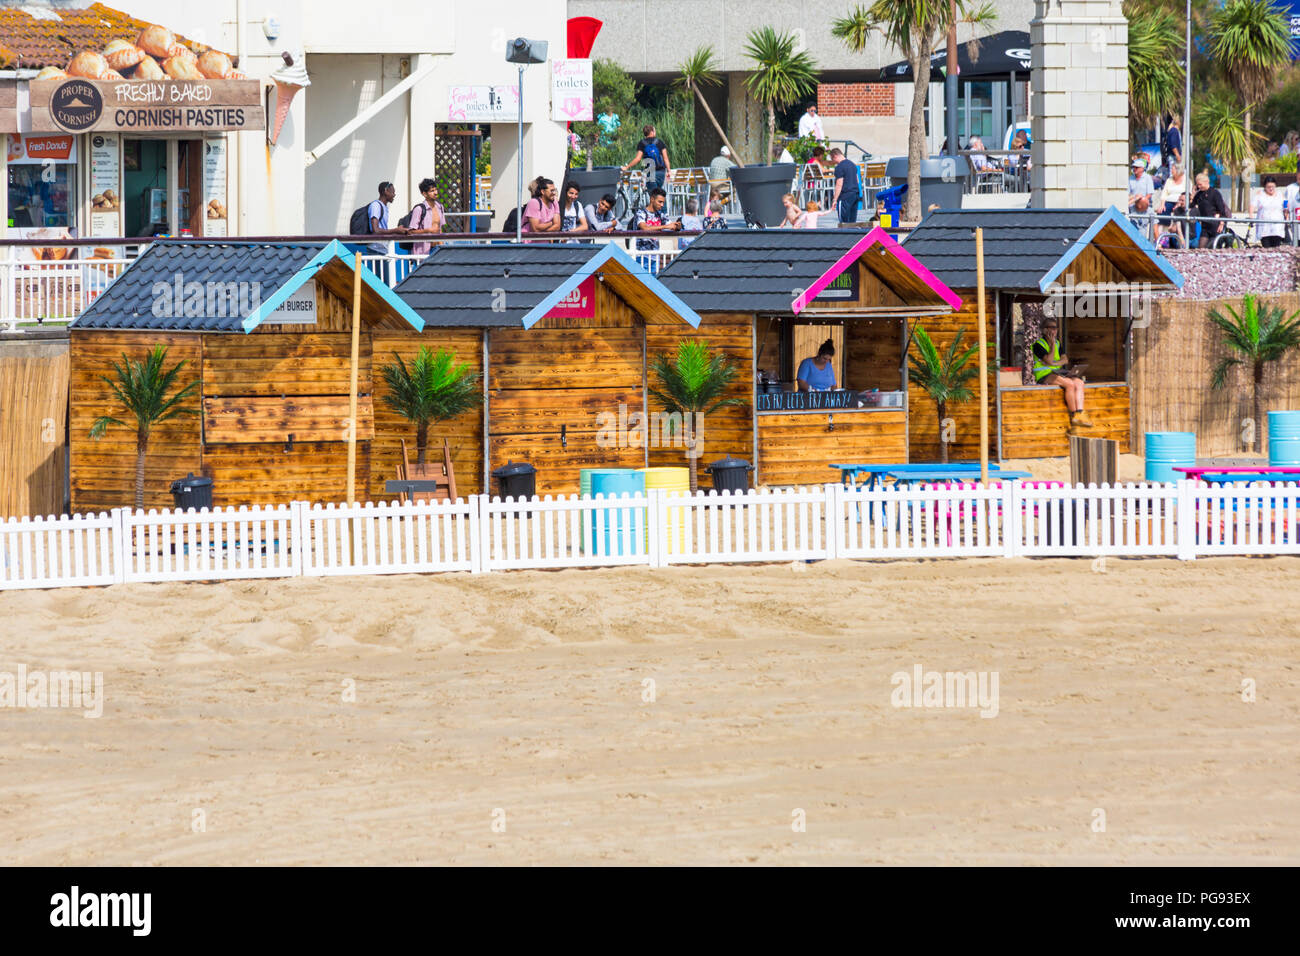 Setting up the Beach Bar on Bournemouth Beach ready for the Air Festival at Bournemouth, Dorset, UK in August - Stock Image